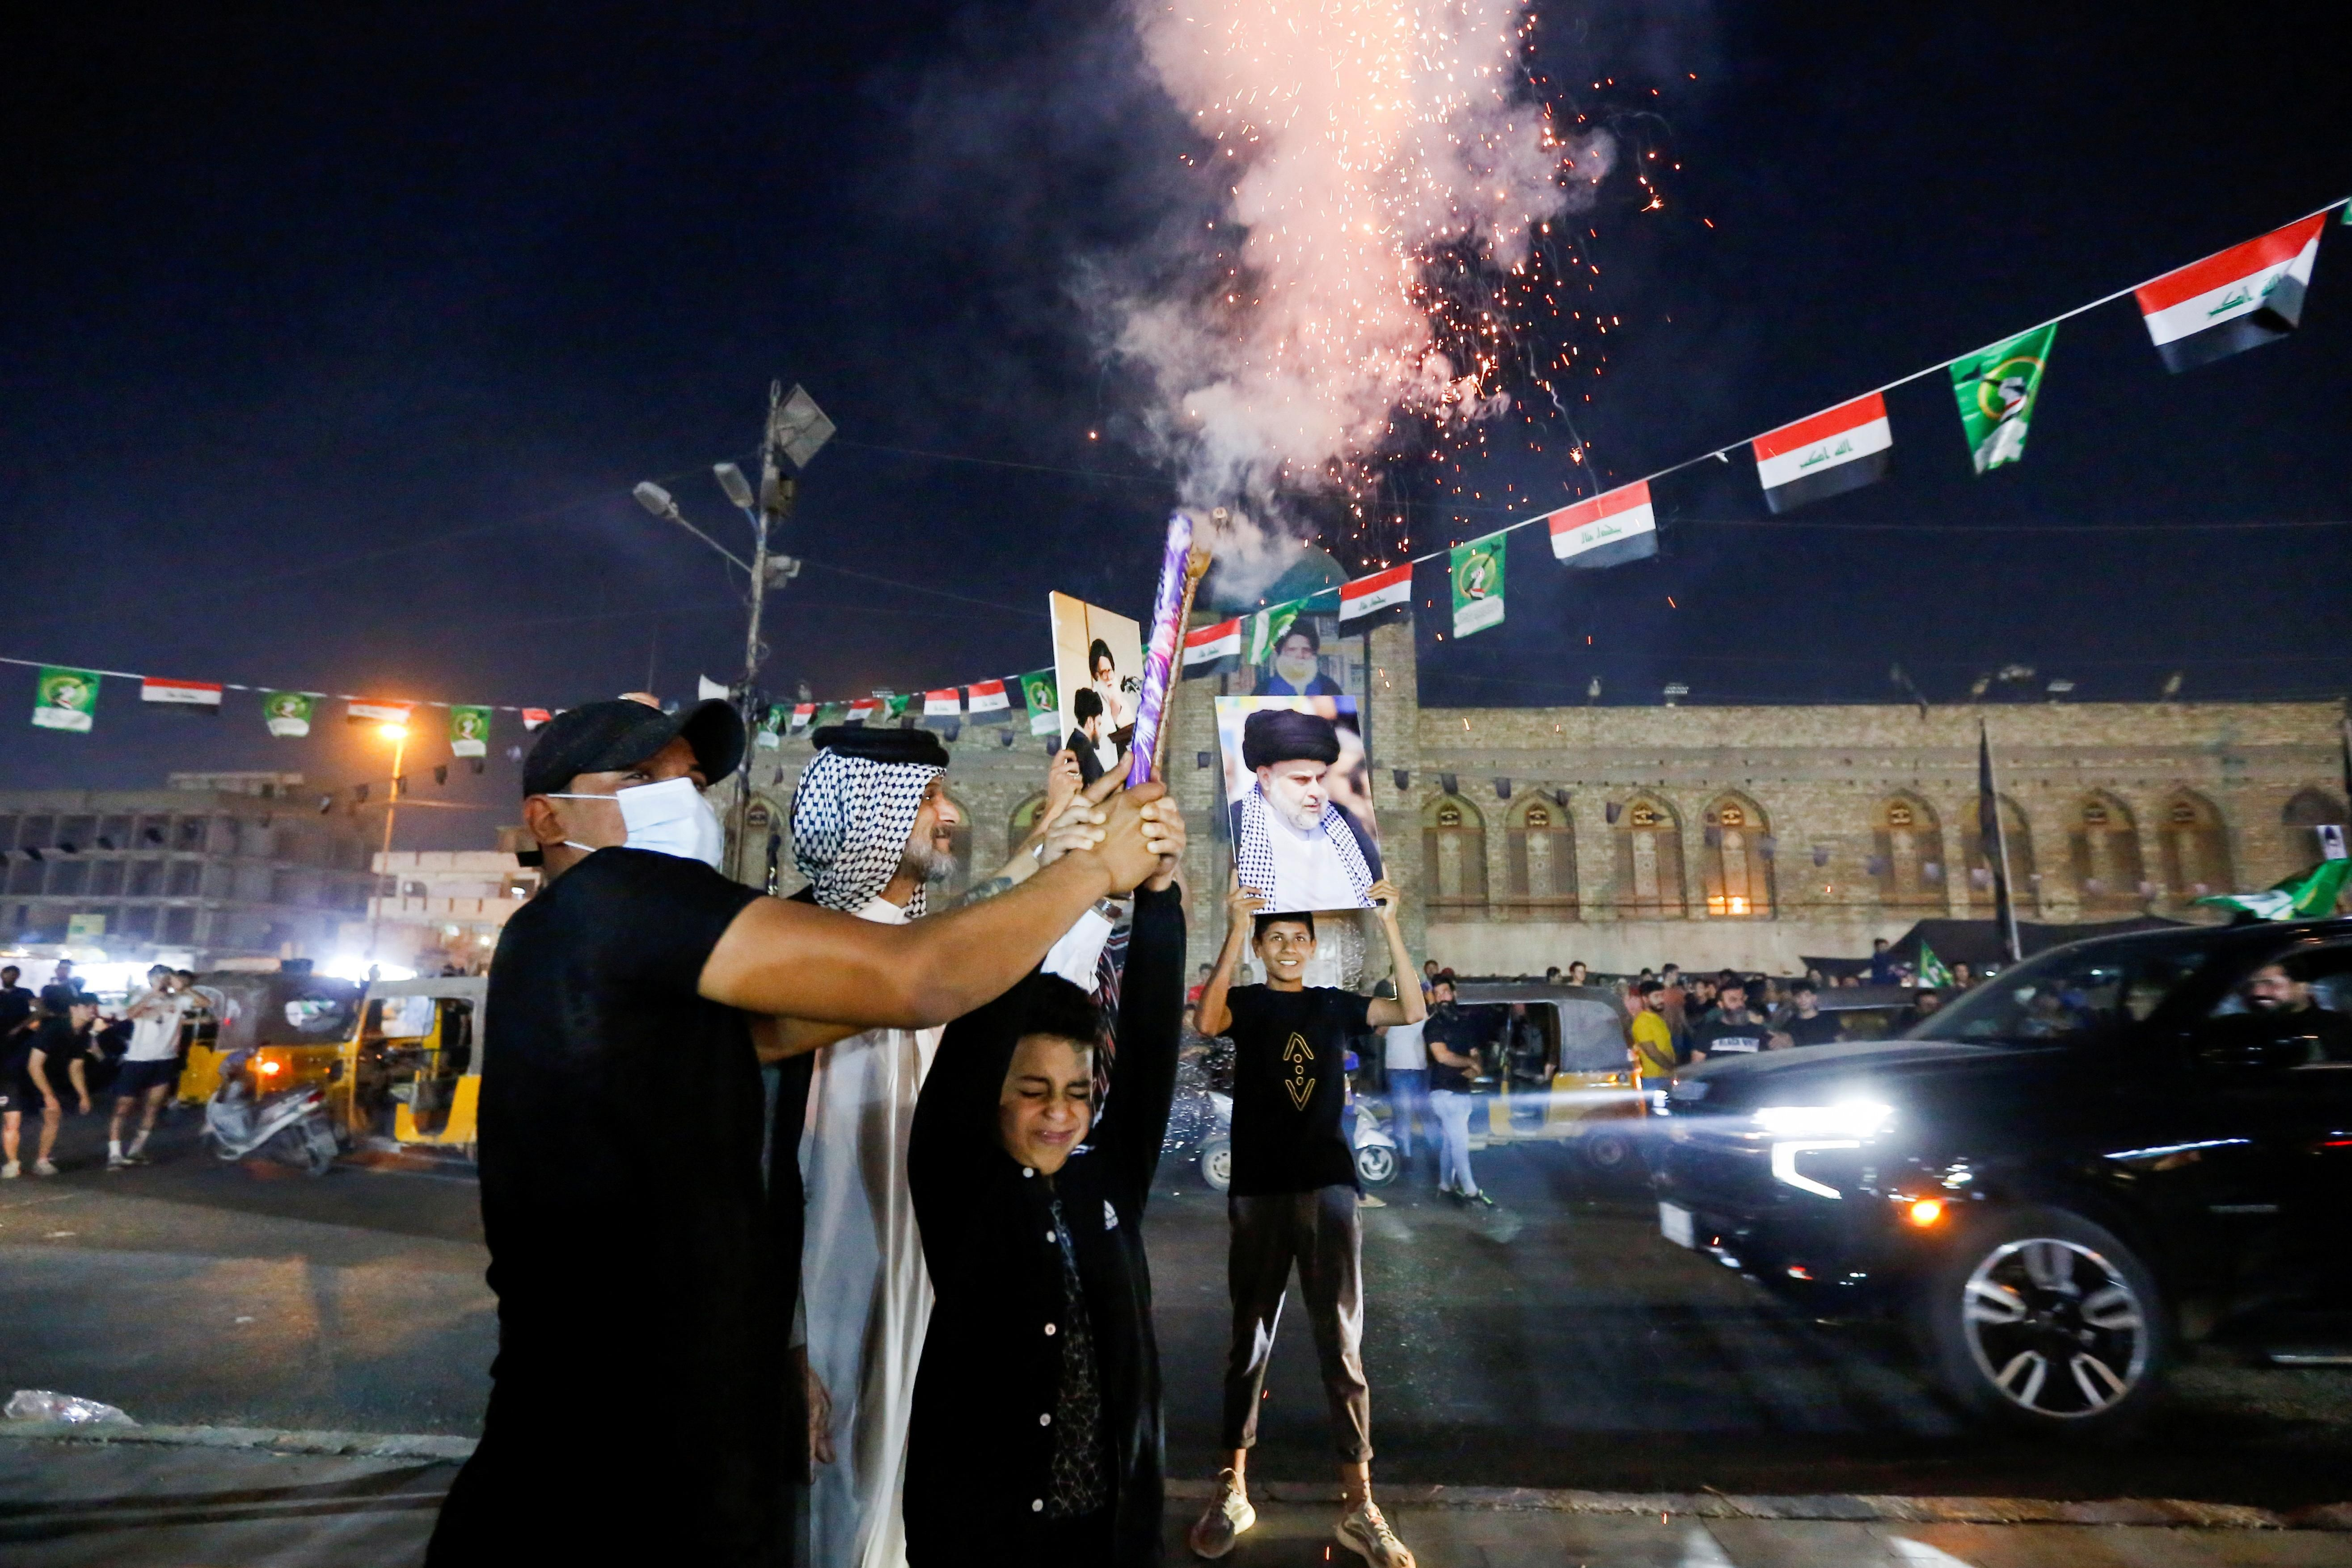 announced, in Sadr City, in Baghdad People celebrate on the street after preliminary results of Iraq's parliamentary election were announced, in Sadr City, in Baghdad, Iraq October 11, 2021